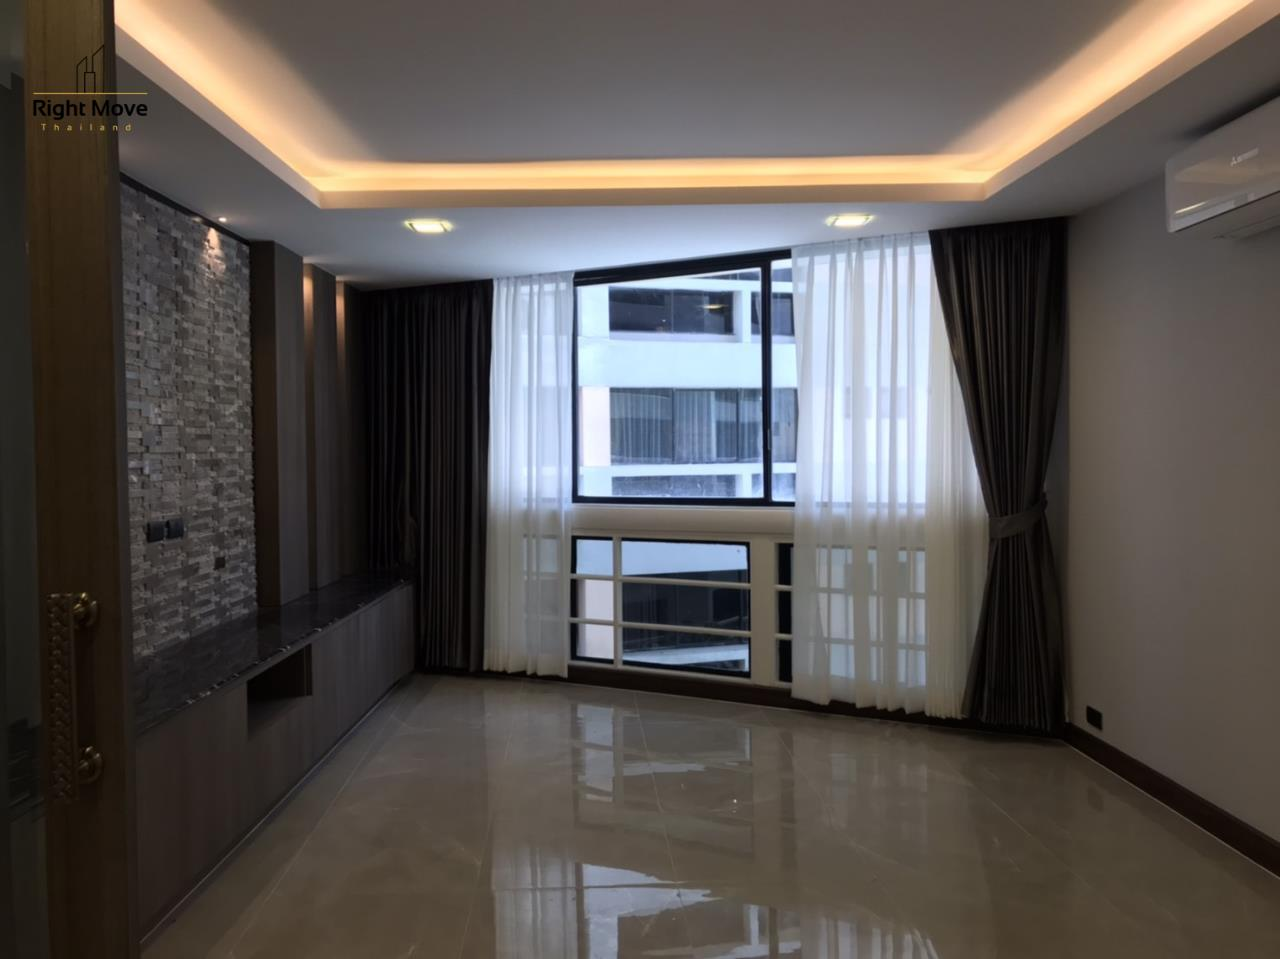 Right Move Thailand Agency's CA7286 President Park For Rent 70,000 THB - 3 Bedrooms - 223 Sqm 6